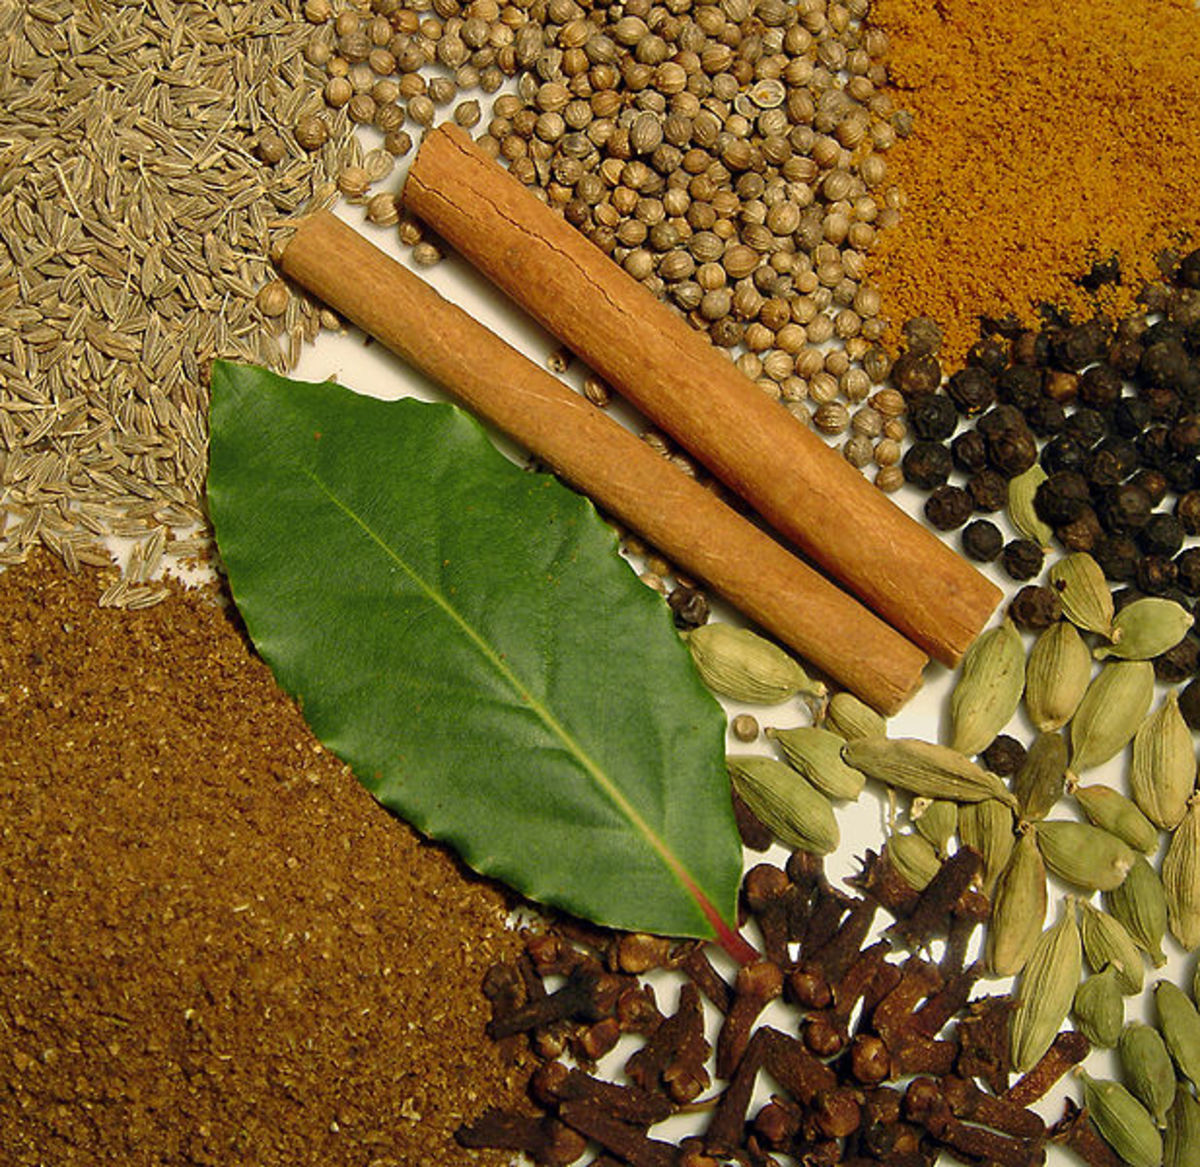 Indian spices giving magical healing - asafetida, black pepper, anise seed, cardamom, cinnamon and cloves